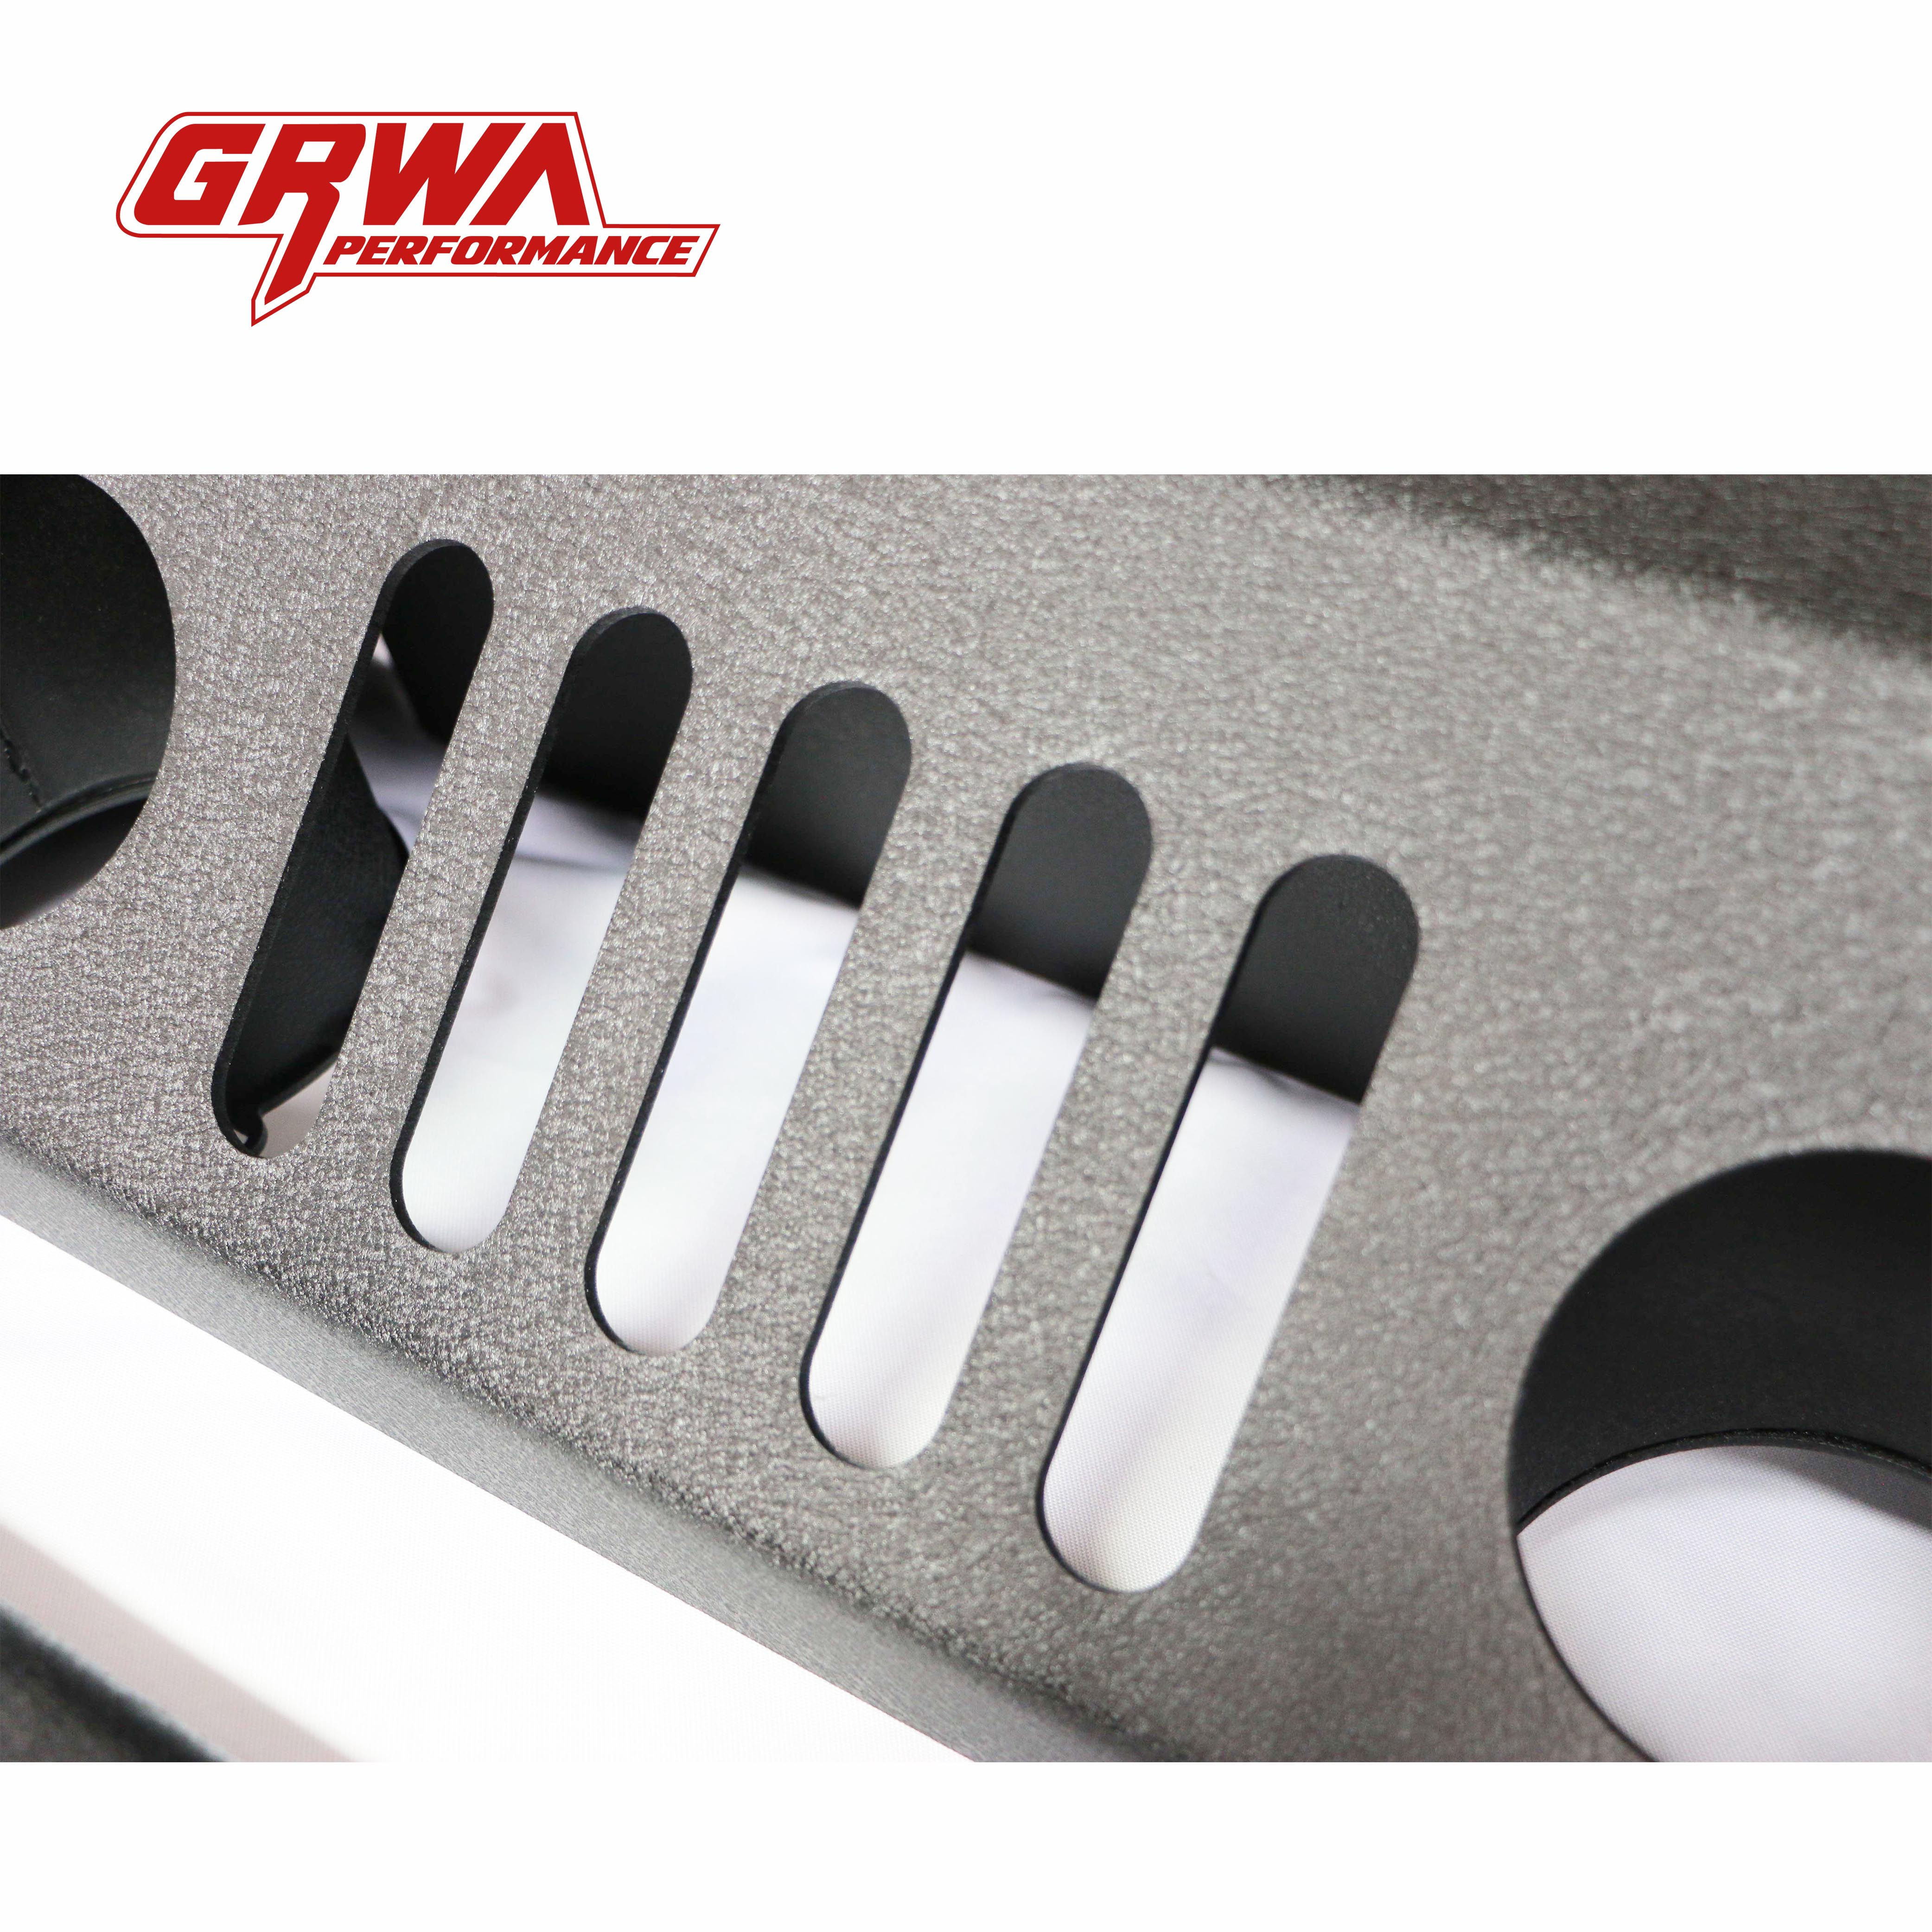 China best quality GRWA front bumper lip